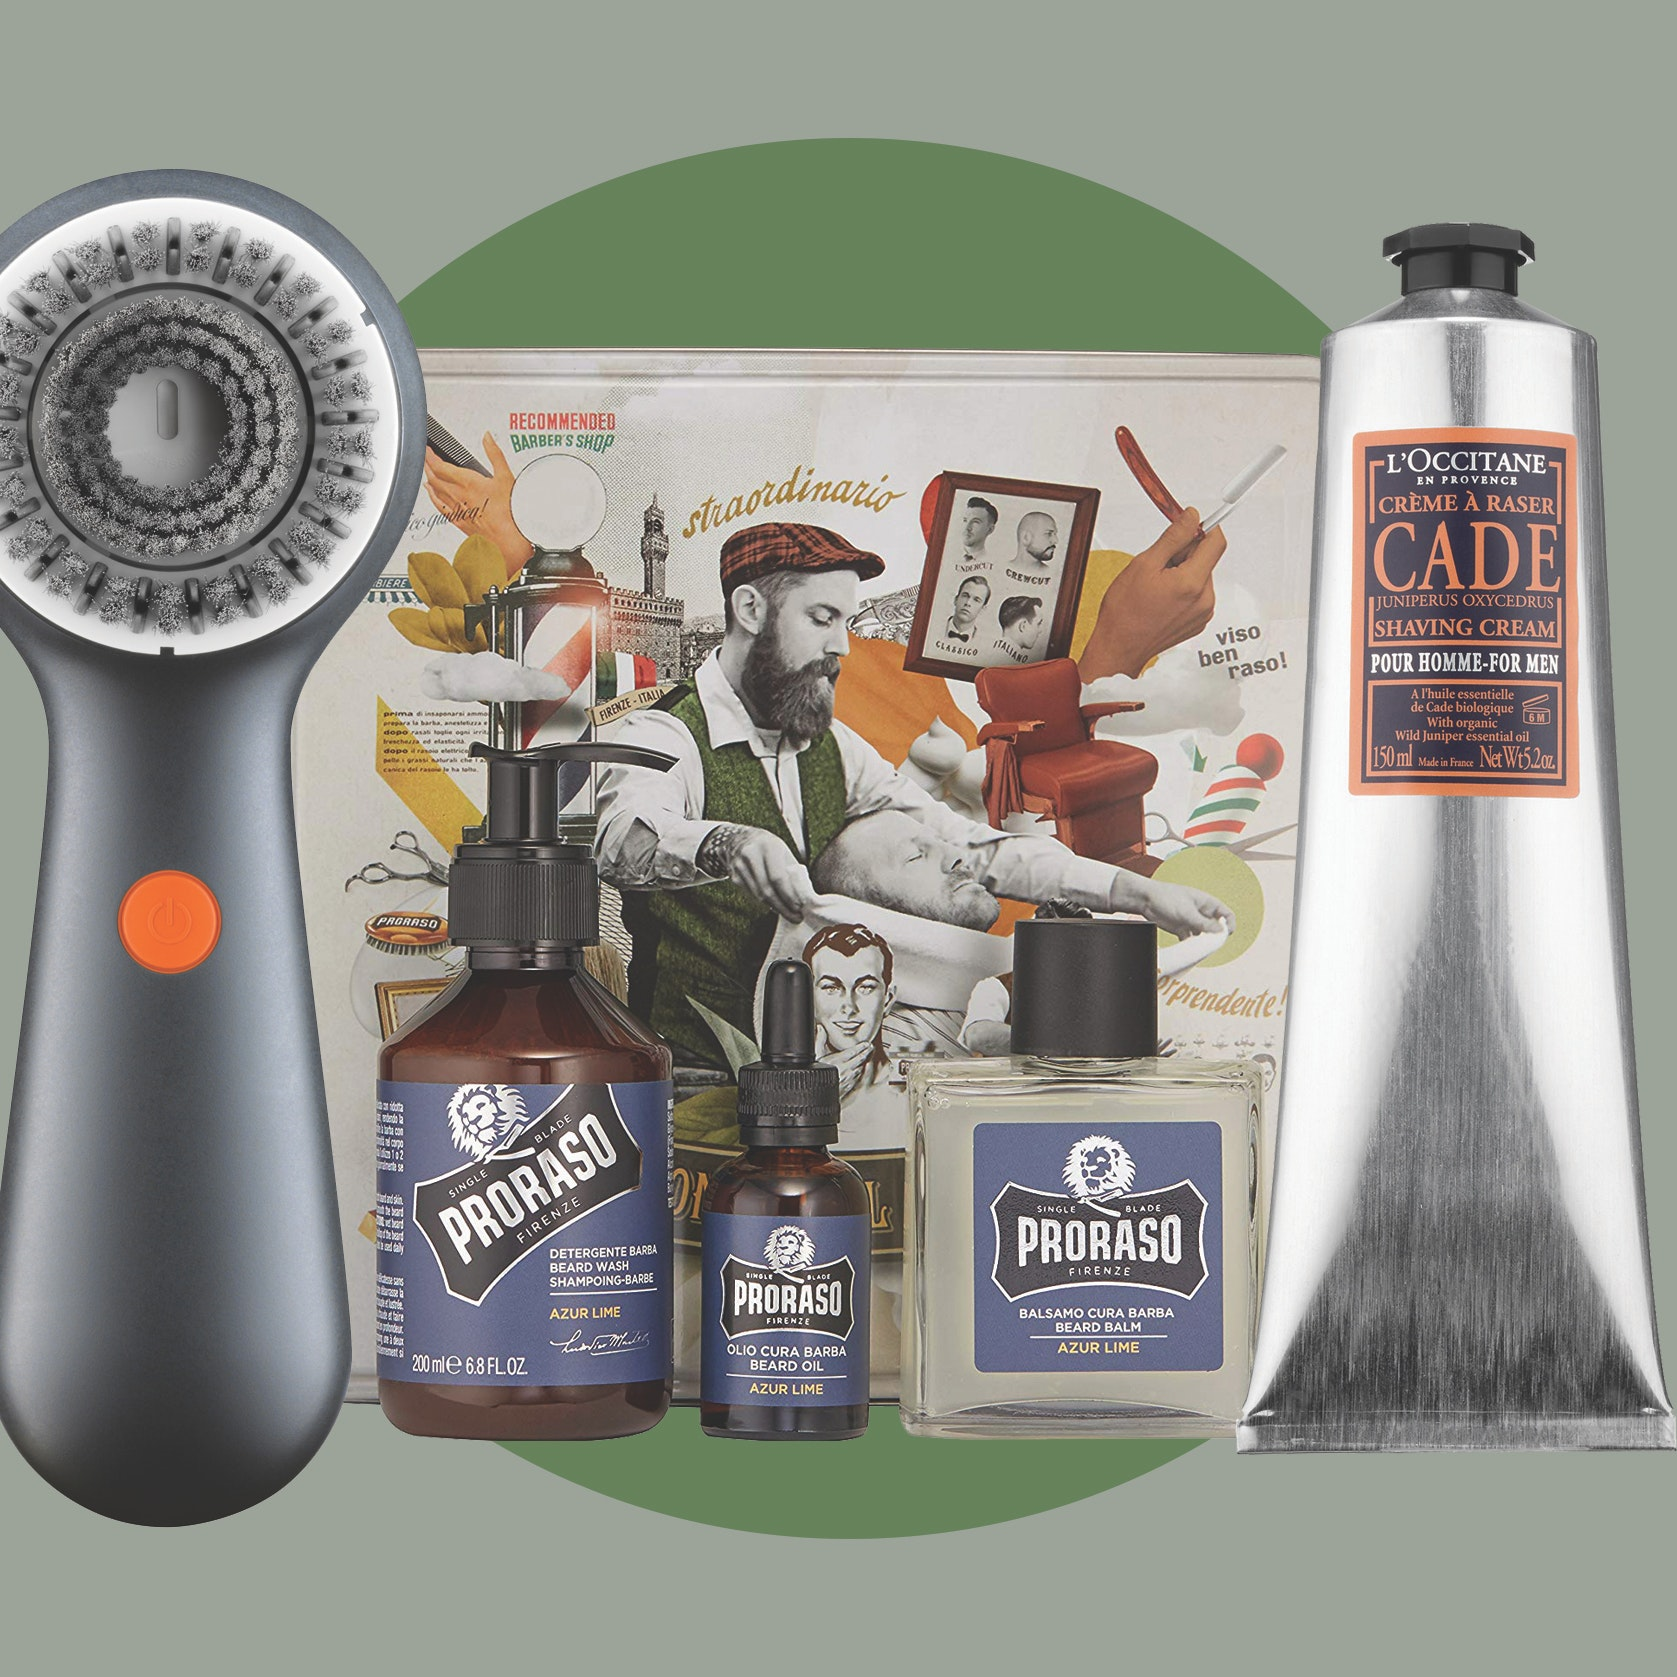 Get the Man In Your Life a Gift He'll Actually Use With These Grooming Gifts on Amazon Prime